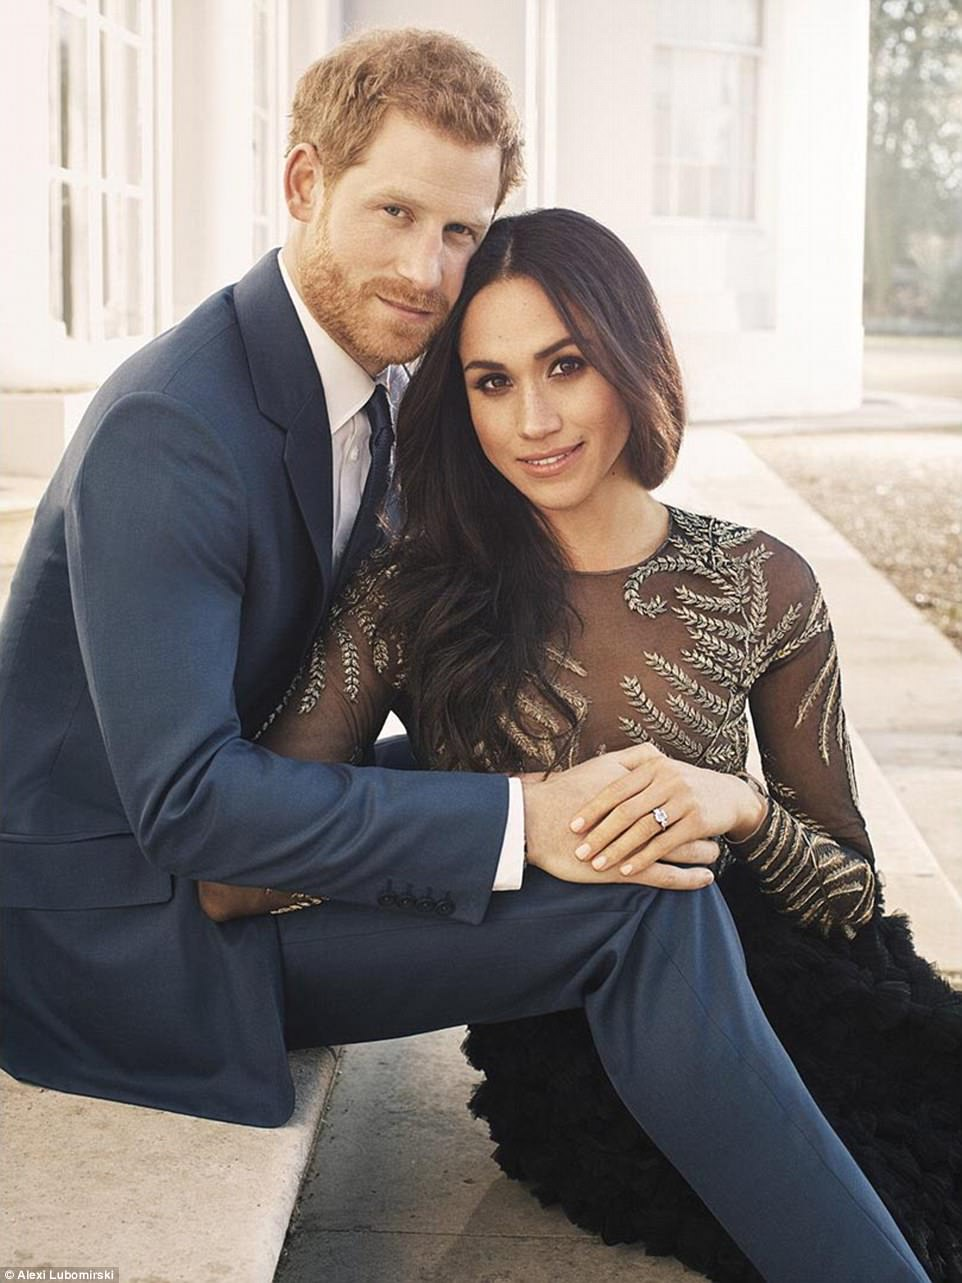 Prince Harry and Meghan Markle have today released their official engagement portraits taken at Frogmore House